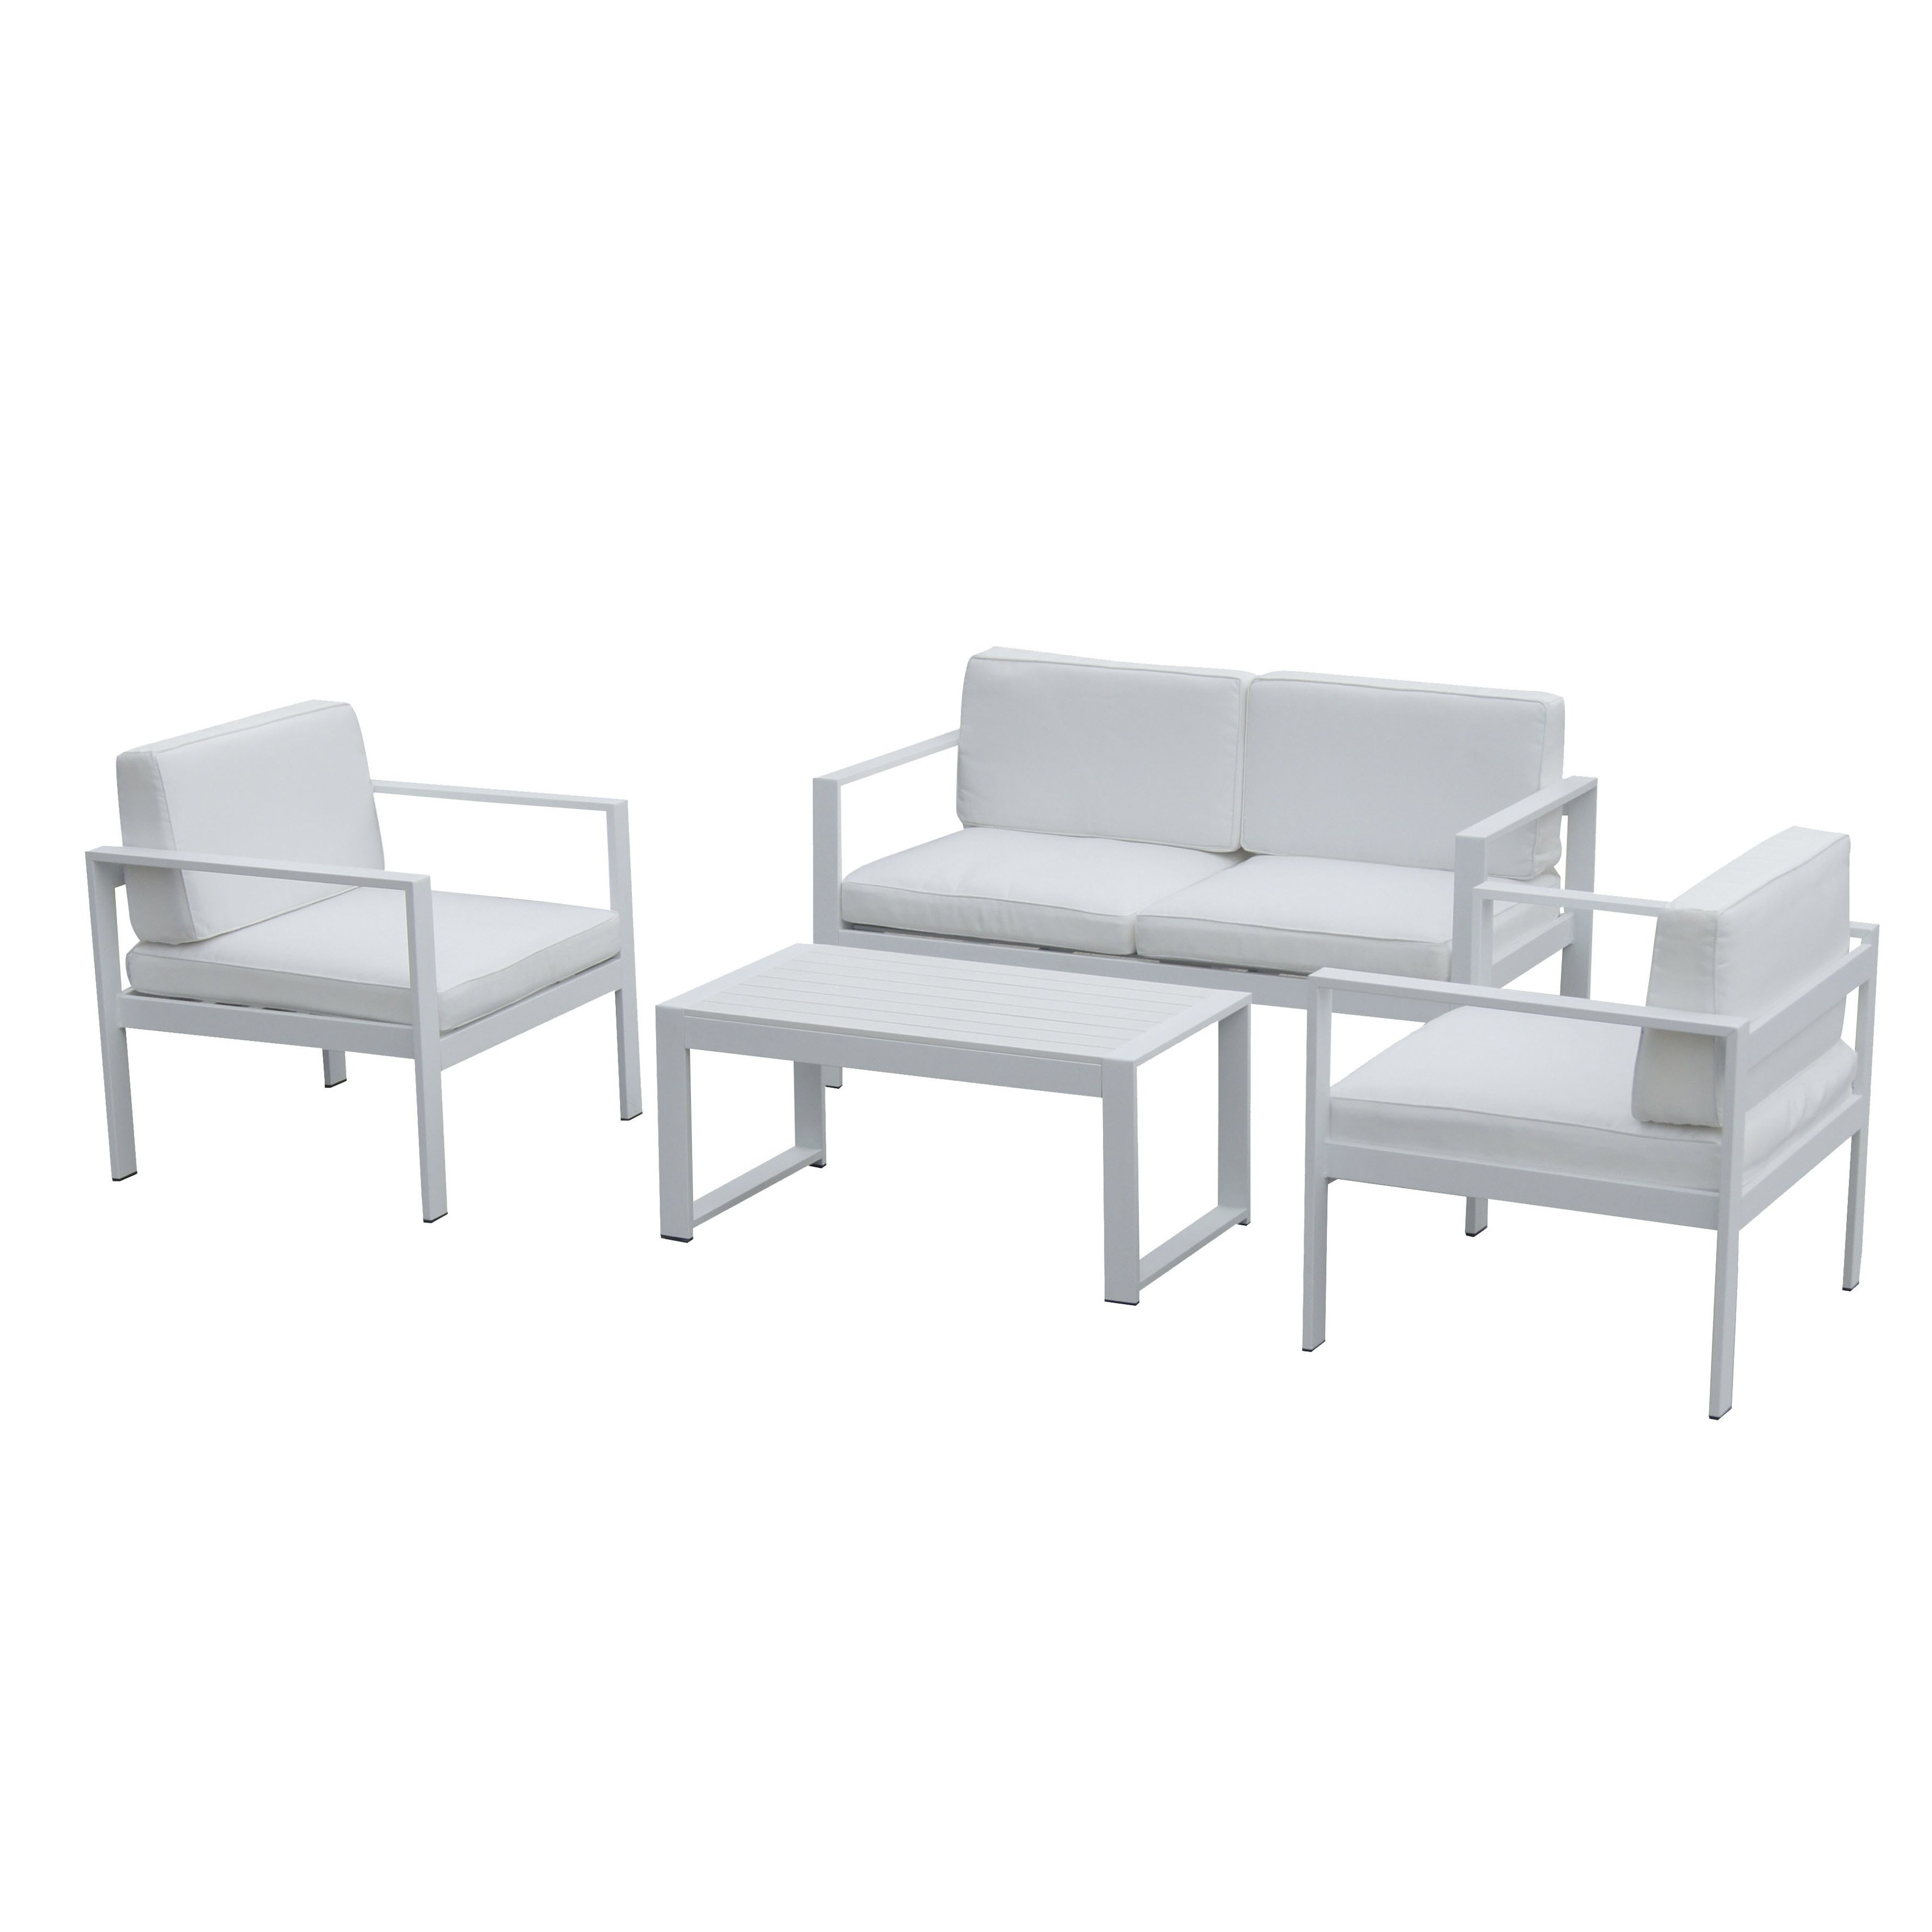 Shop Pangea Home Karen Fabric/ Aluminum 4 Piece Sofa Set – Free Inside Karen Sofa Chairs (View 17 of 25)